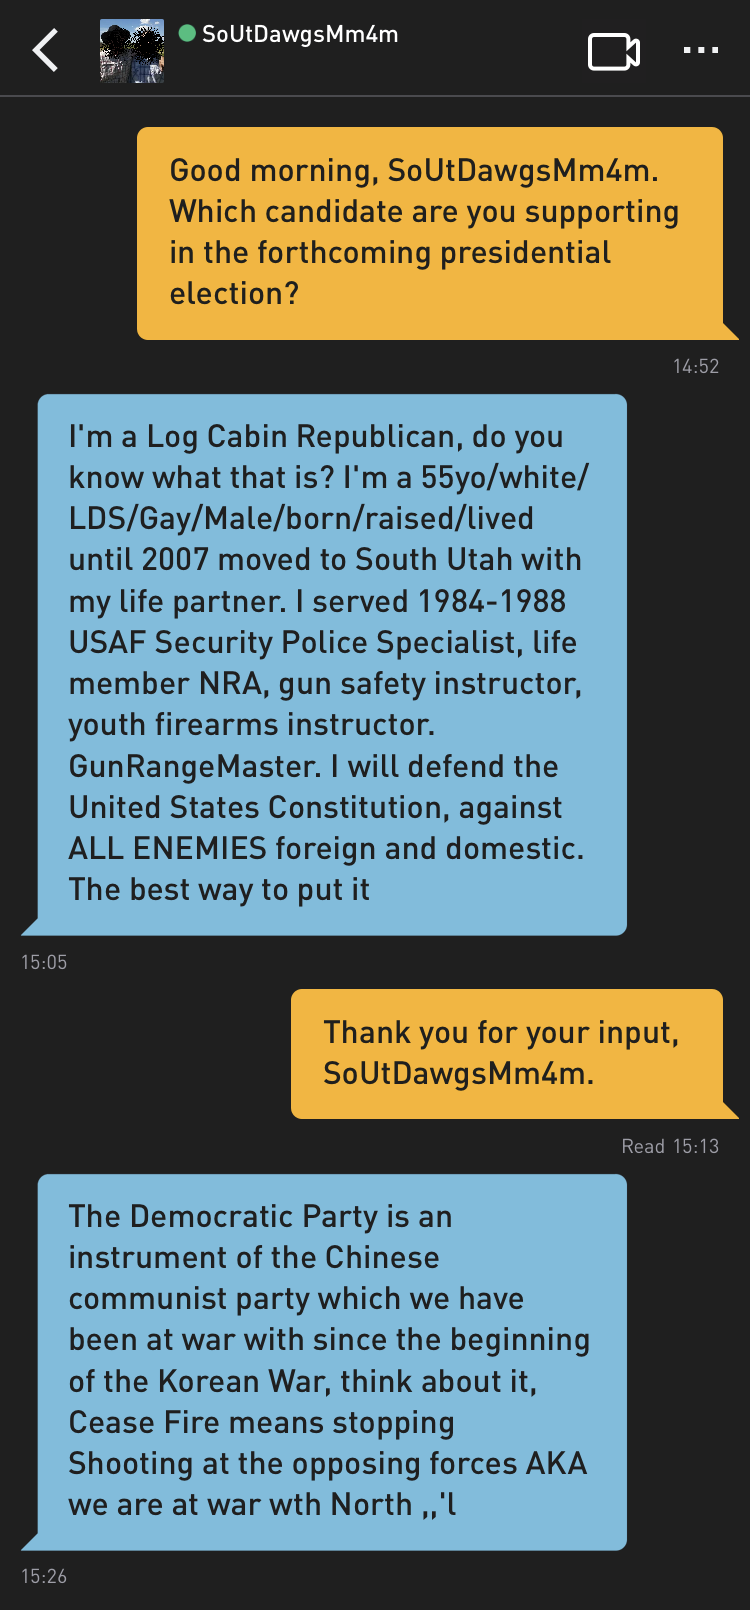 Me: Good morning, SoUtDawgsMm4m. Which candidate are you supporting in the forthcoming presidential election? SoUtDawgsMm4m: I'm a Log Cabin Republican, do you know what that is? I'm a 55yo/white/LDS/Gay/Male/born/raised/lived until 2007 moved to South Utah with my life partner. I served 1984-1988 USAF Security Police Specialist, life member NRA, gun safety instructor, youth firearms instructor. GunRangeMaster. I will defend the United States Constitution, against ALL ENEMIES foreign and domestic. The best way to put it Me: Thank you for your input, SoUtDawgsMm4m. SoUtDawgsMm4m: The Democratic Party is an instrument of the Chinese communist party which we have been at war with since the beginning of the Korean War, think about it, Cease Fire means stopping Shooting at the opposing forces AKA we are at war wth North ,,'l